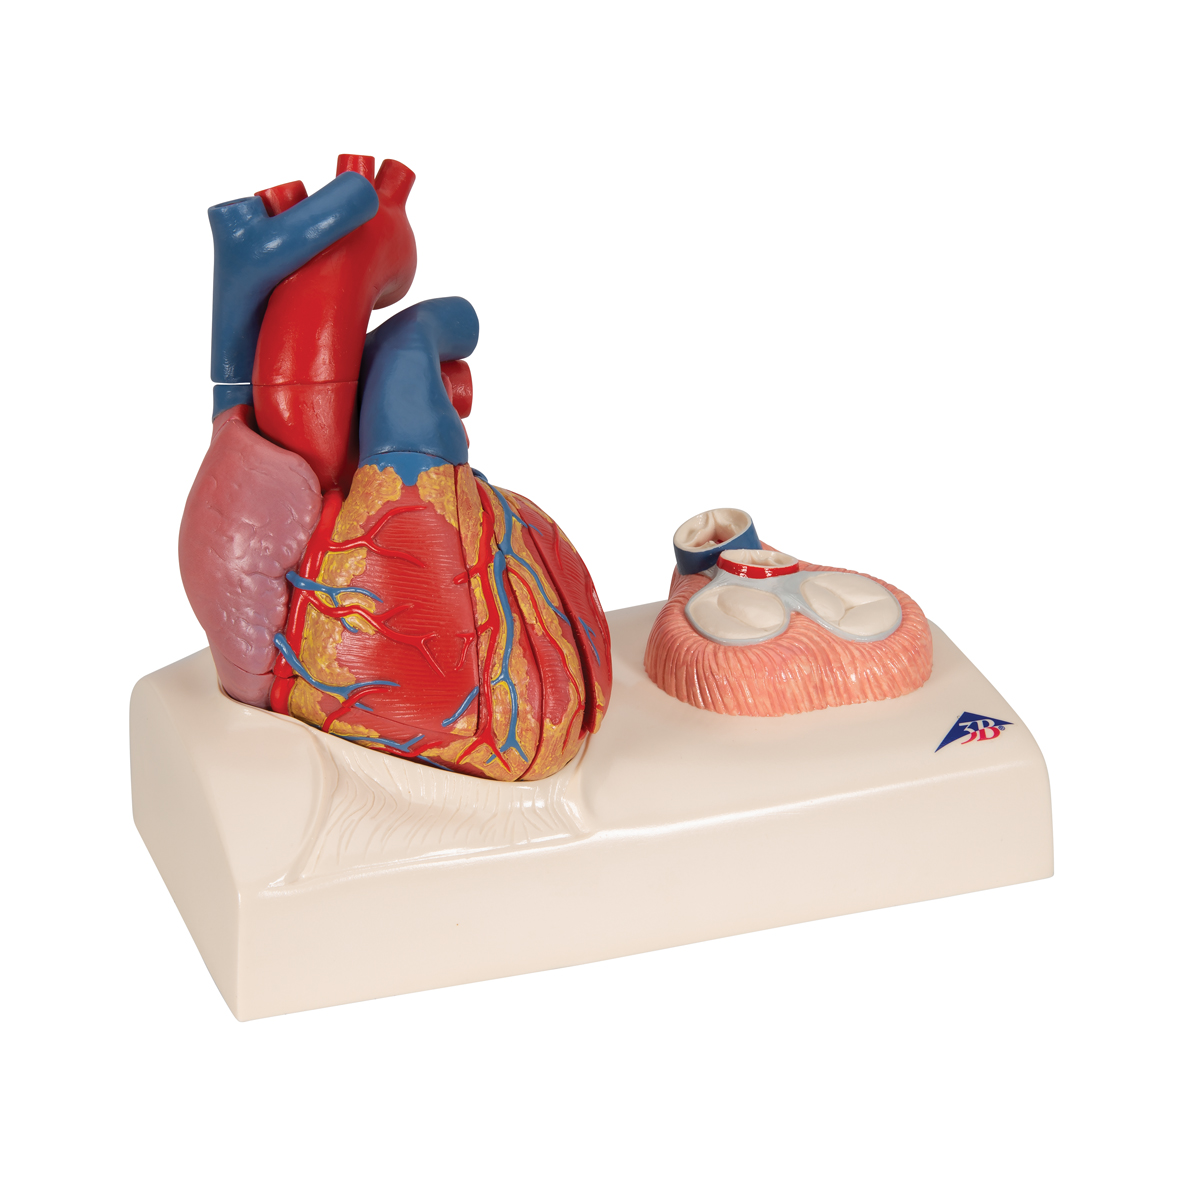 Magnetic Heart model, life-size, 5 parts - 1010006 - 3B ...